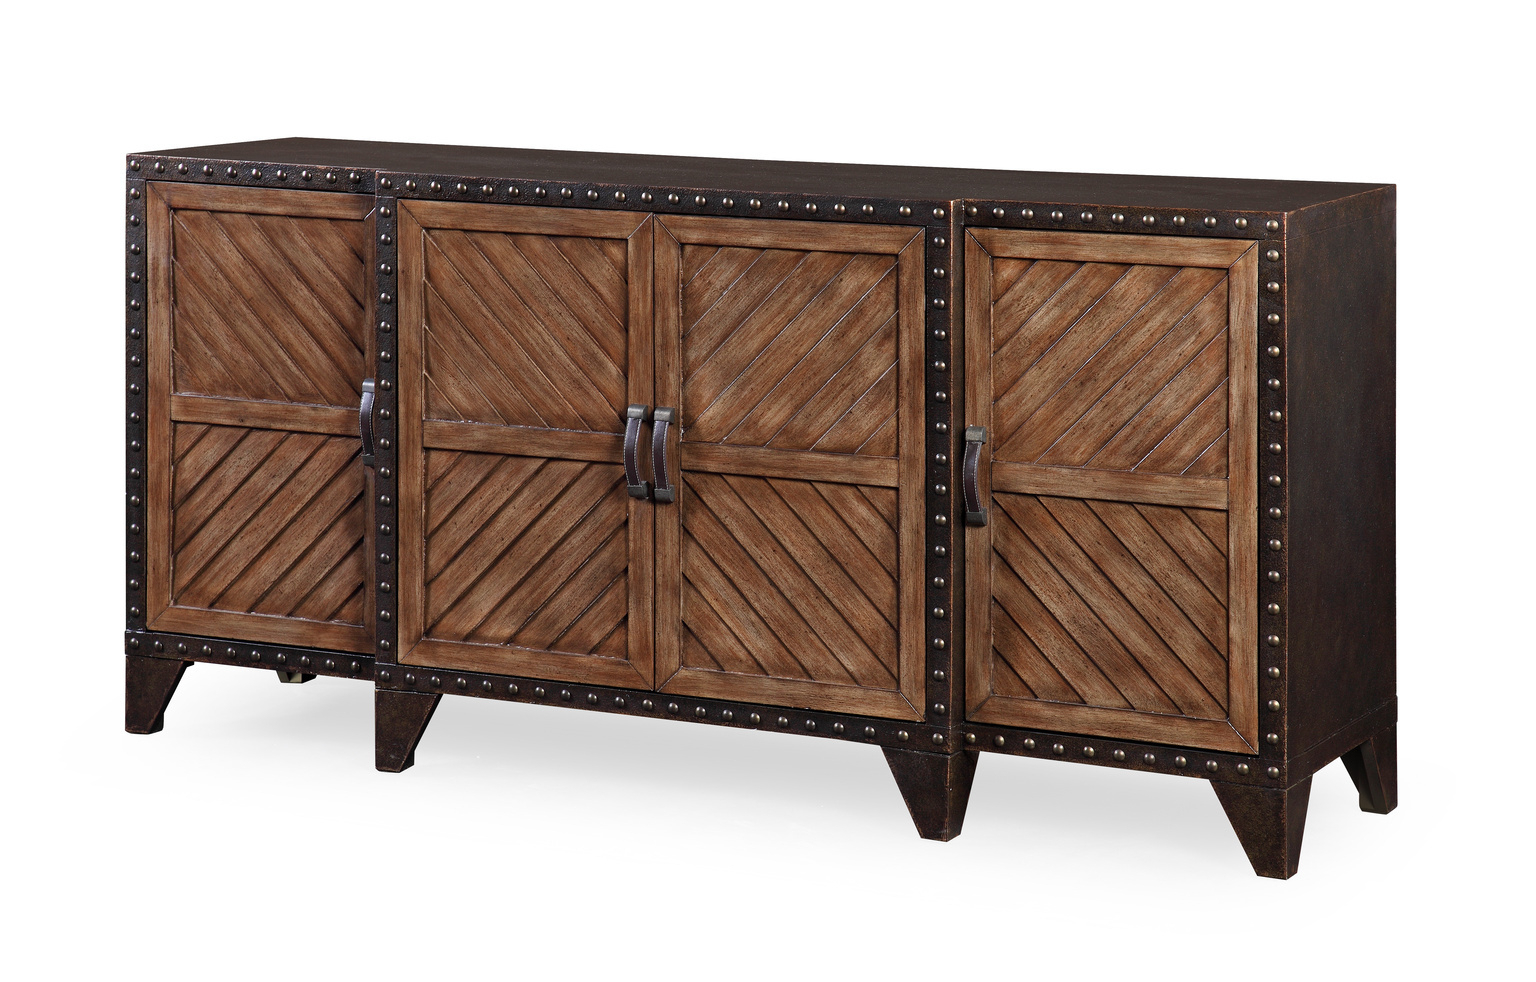 Burnt Oak Metal Sideboards Regarding Current Sideboards, Cabinets, Shelving (View 10 of 20)